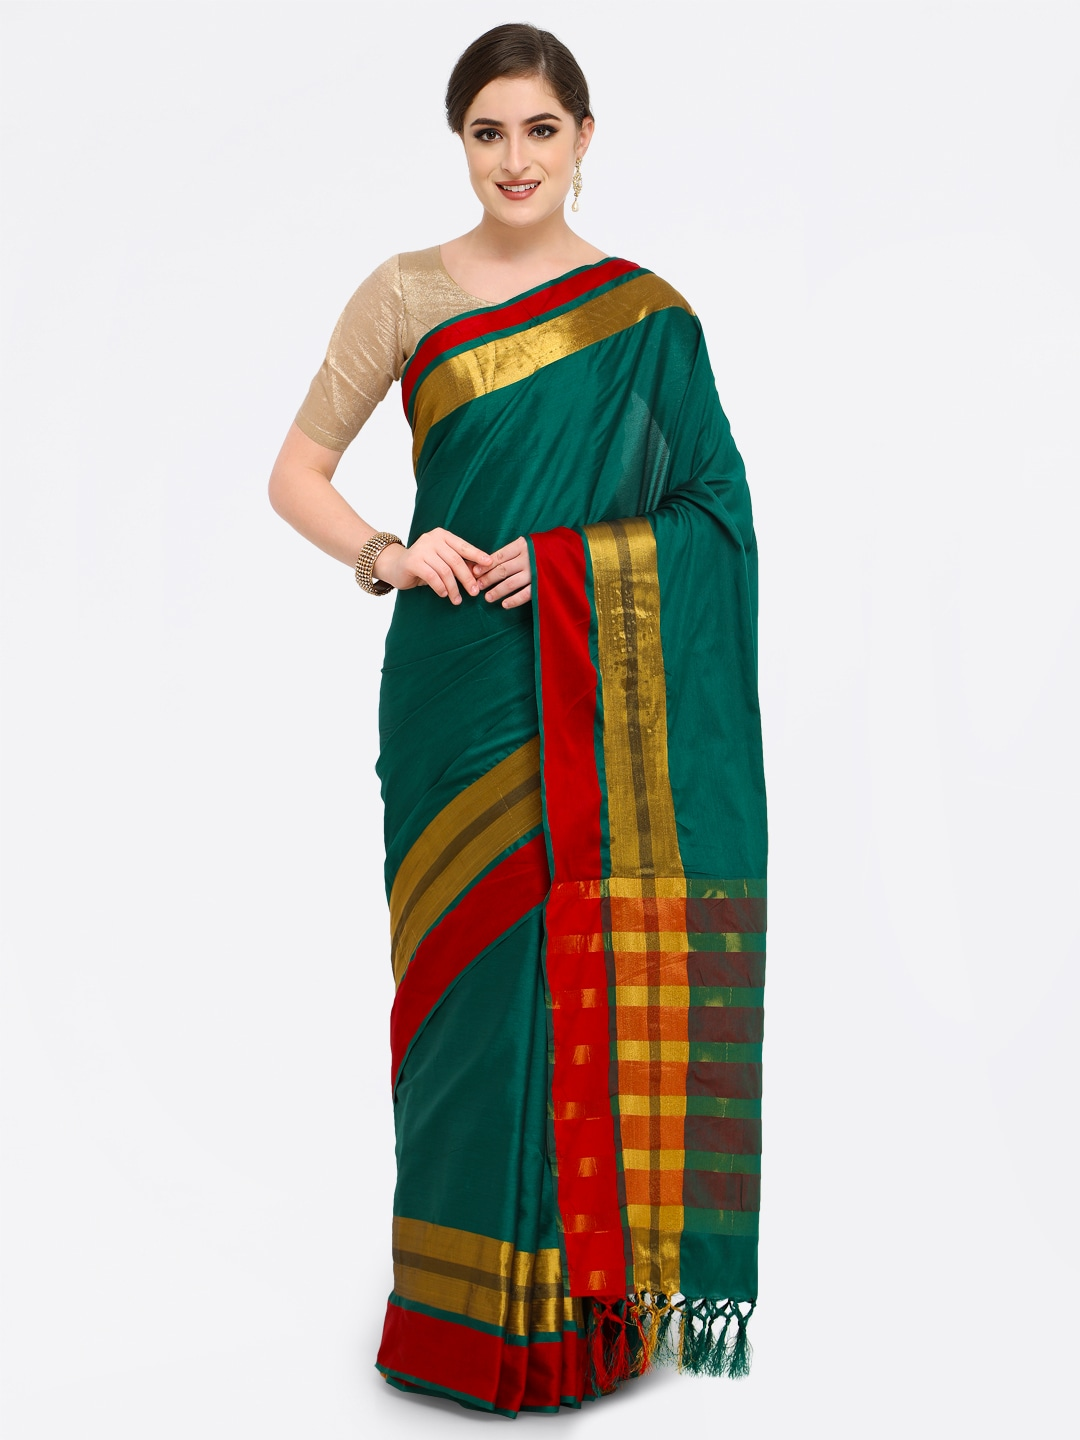 bcc1068fc6 Cotton Silk Saree - Buy Cotton Silk Sarees Online | Myntra